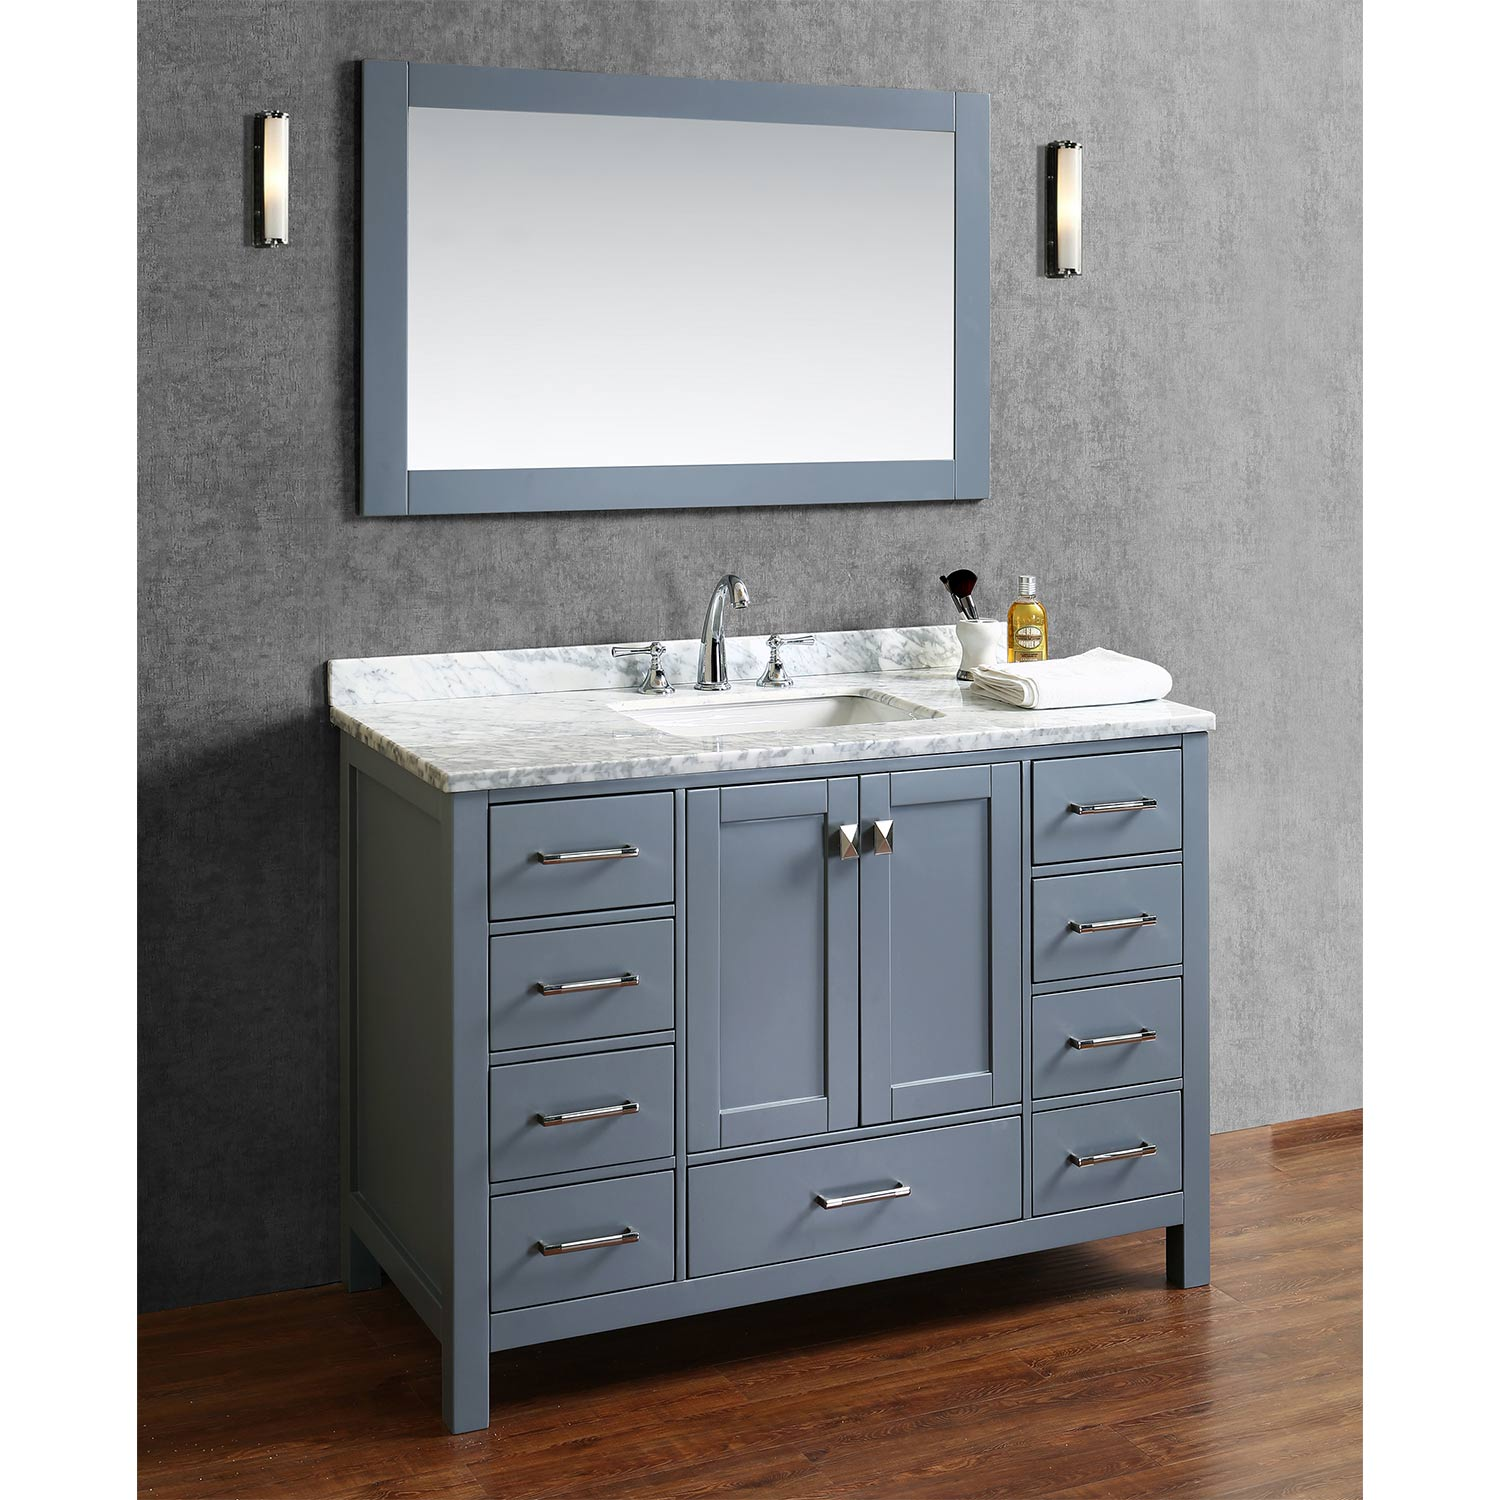 48 vanity with sink. Vincent 48  Solid Wood Single Bathroom Vanity In Charcoal Grey HM 13001 WMSQ CG Buy Inch